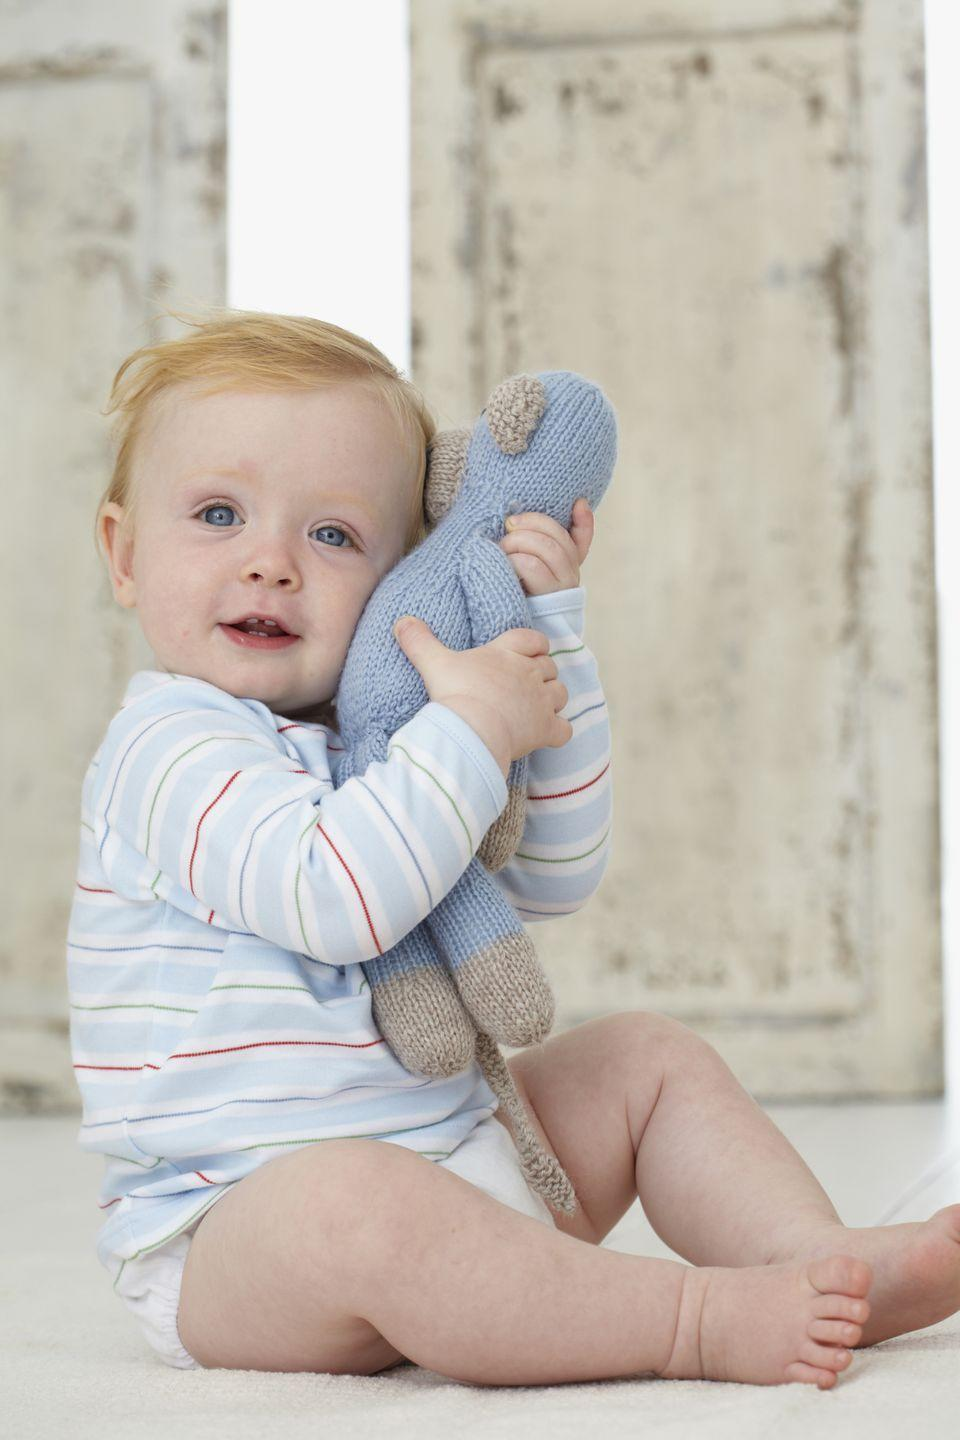 <p>Jacob, Michael, Joshua, Emily, Emma (a new one!), and Madison reigned on the list of favorite baby names. However, royal classics like Andrew and Elizabeth were also among the top 10.</p>